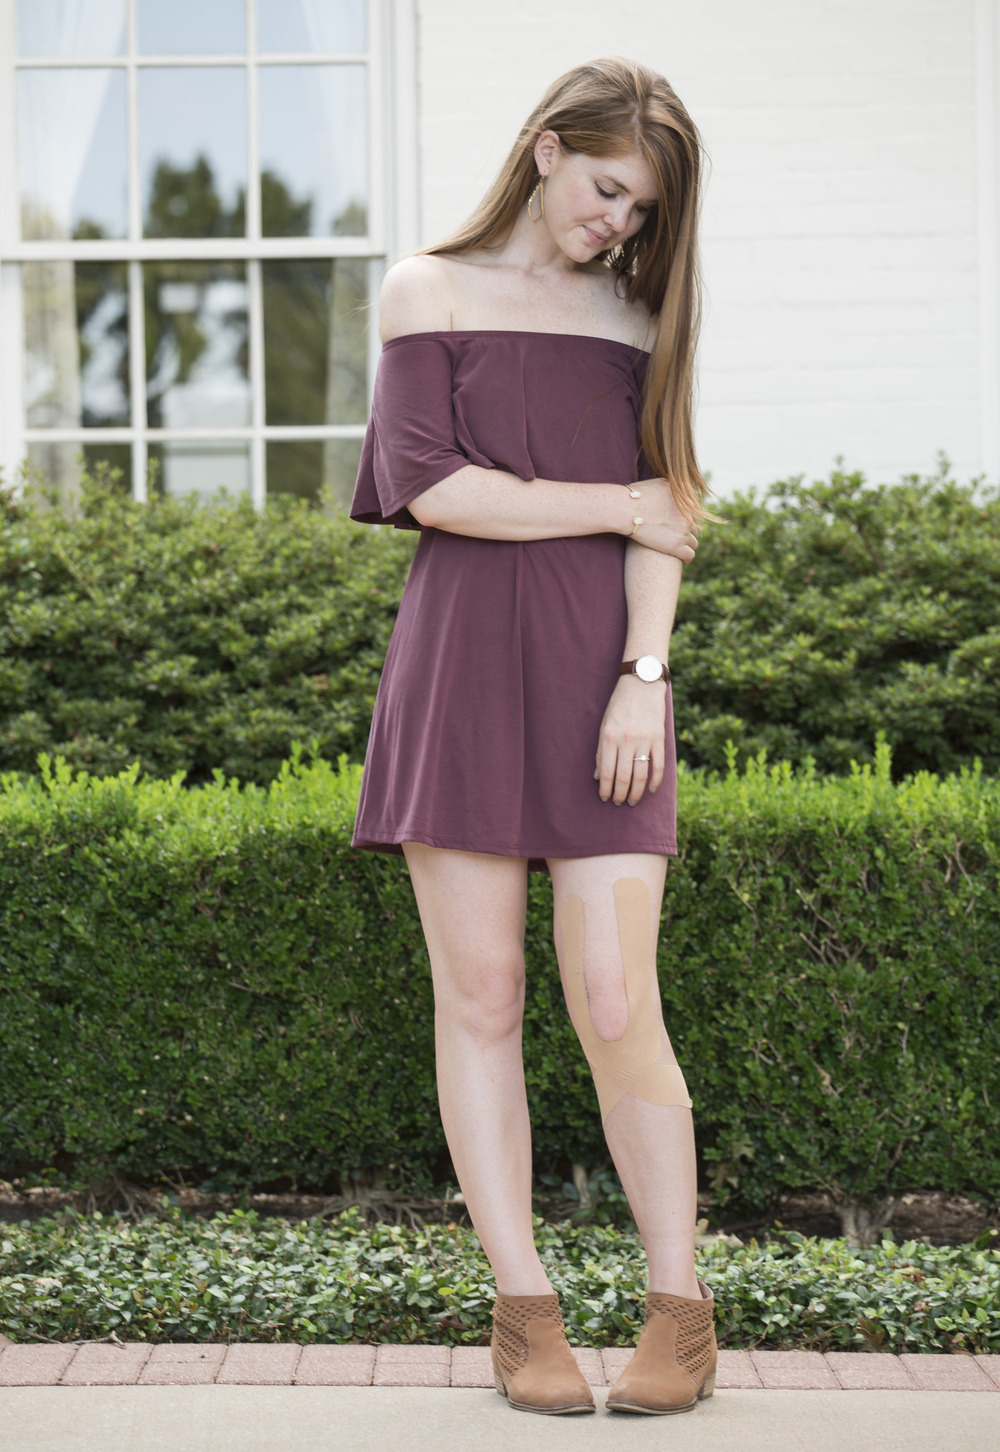 bp maroon off the shoulder cotton dress, seychelles waypoint booties, kendra scott sophee earrings, kendra scott druzy cuff, daniel wellington watch, jomashop, sarah kelly photography, dallas photography, arlington hall at lee park, nordstrom